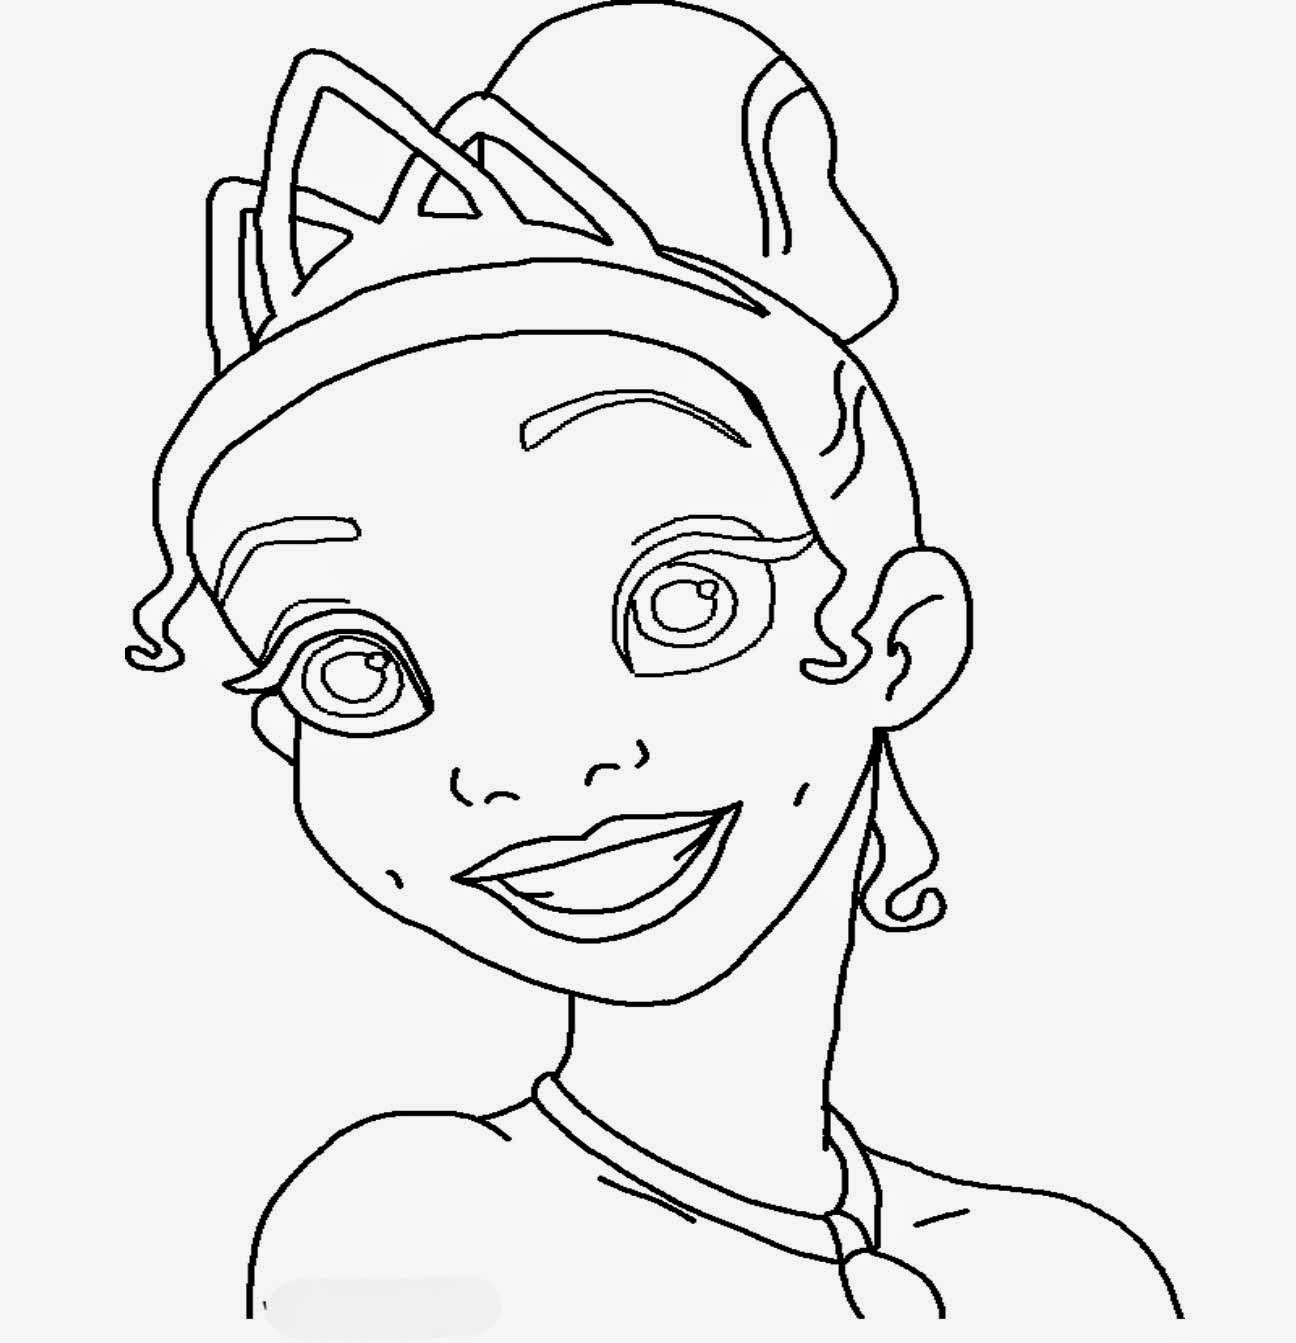 Disney Coloring Pages for Girls | Terrific Coloring Pages